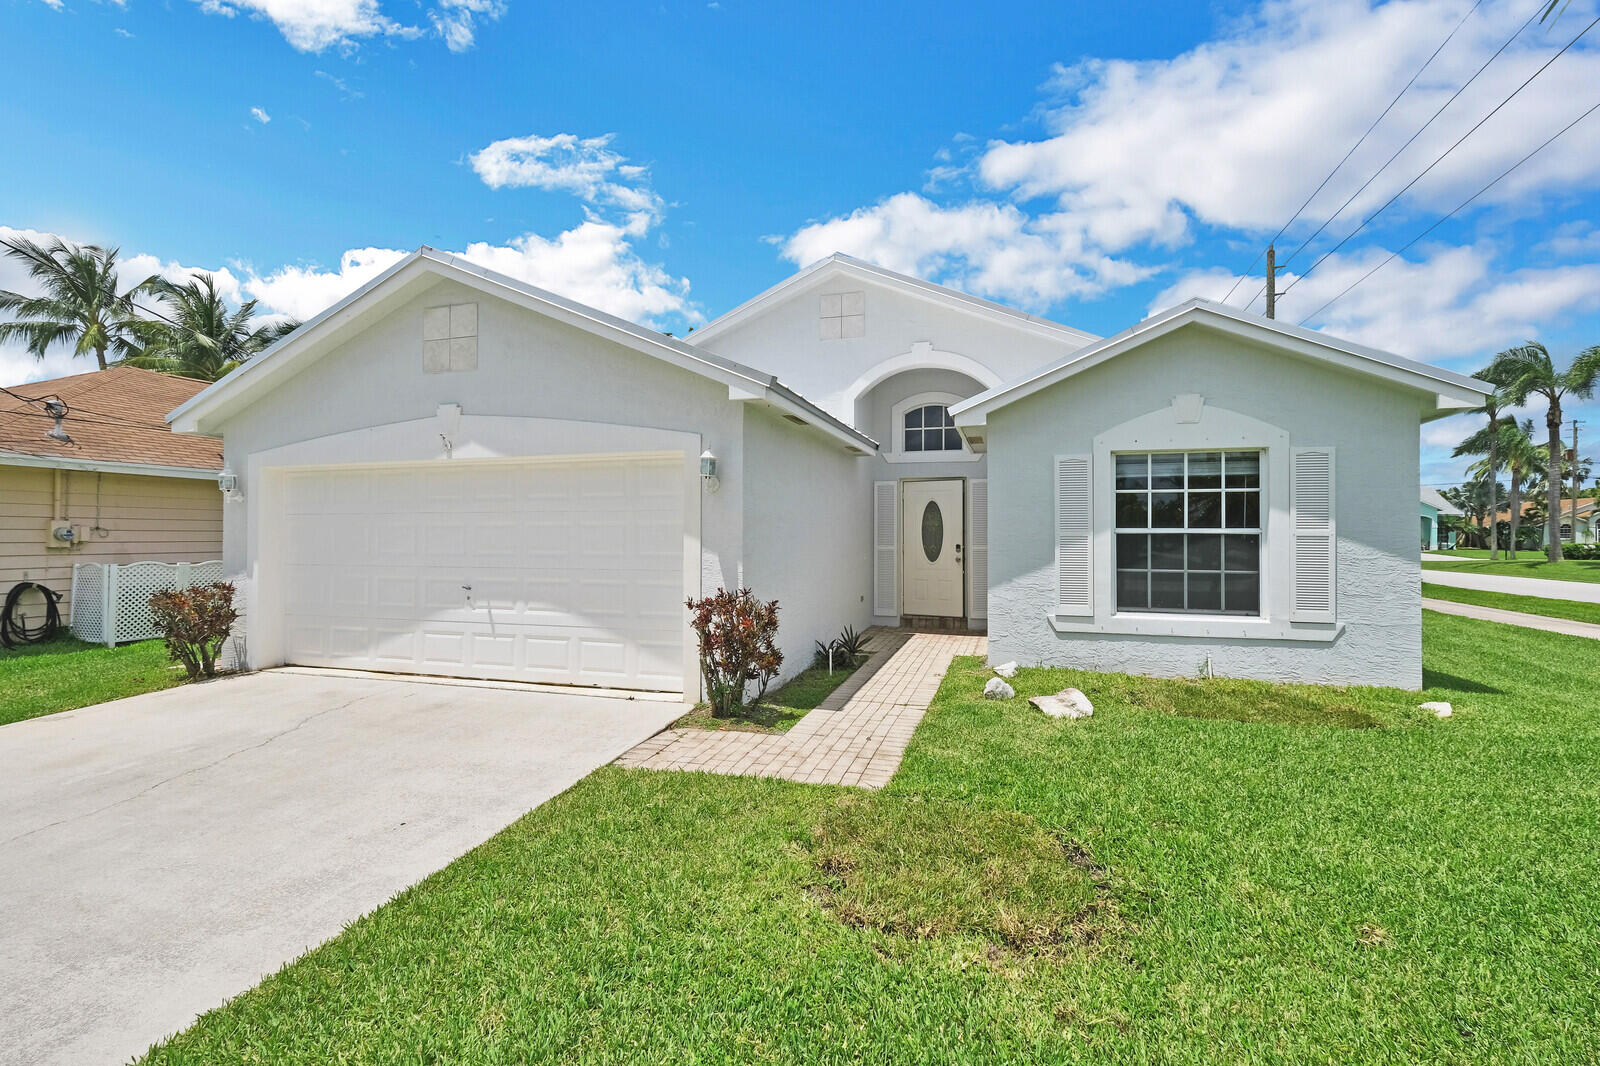 ABSOLUTELY CHARMING solid CBS built home  on a quite corner lot . Large bright eat-in kitchen with breakfast bar overlooking the pool.  Stainless steel appliances. Entry foyer and hallway leading to guest bedrooms and bath make this home appear larger than state living square footage. Master bedroom has ample closet space and master bath has shower and soaking tub. Fenced in yard. Plenty of room for your boat on side yard. Newer roof and freshly painted exterior. Great location just outside of Abacoa but with no HOA fees! Convenient to I95. All sizes approximate